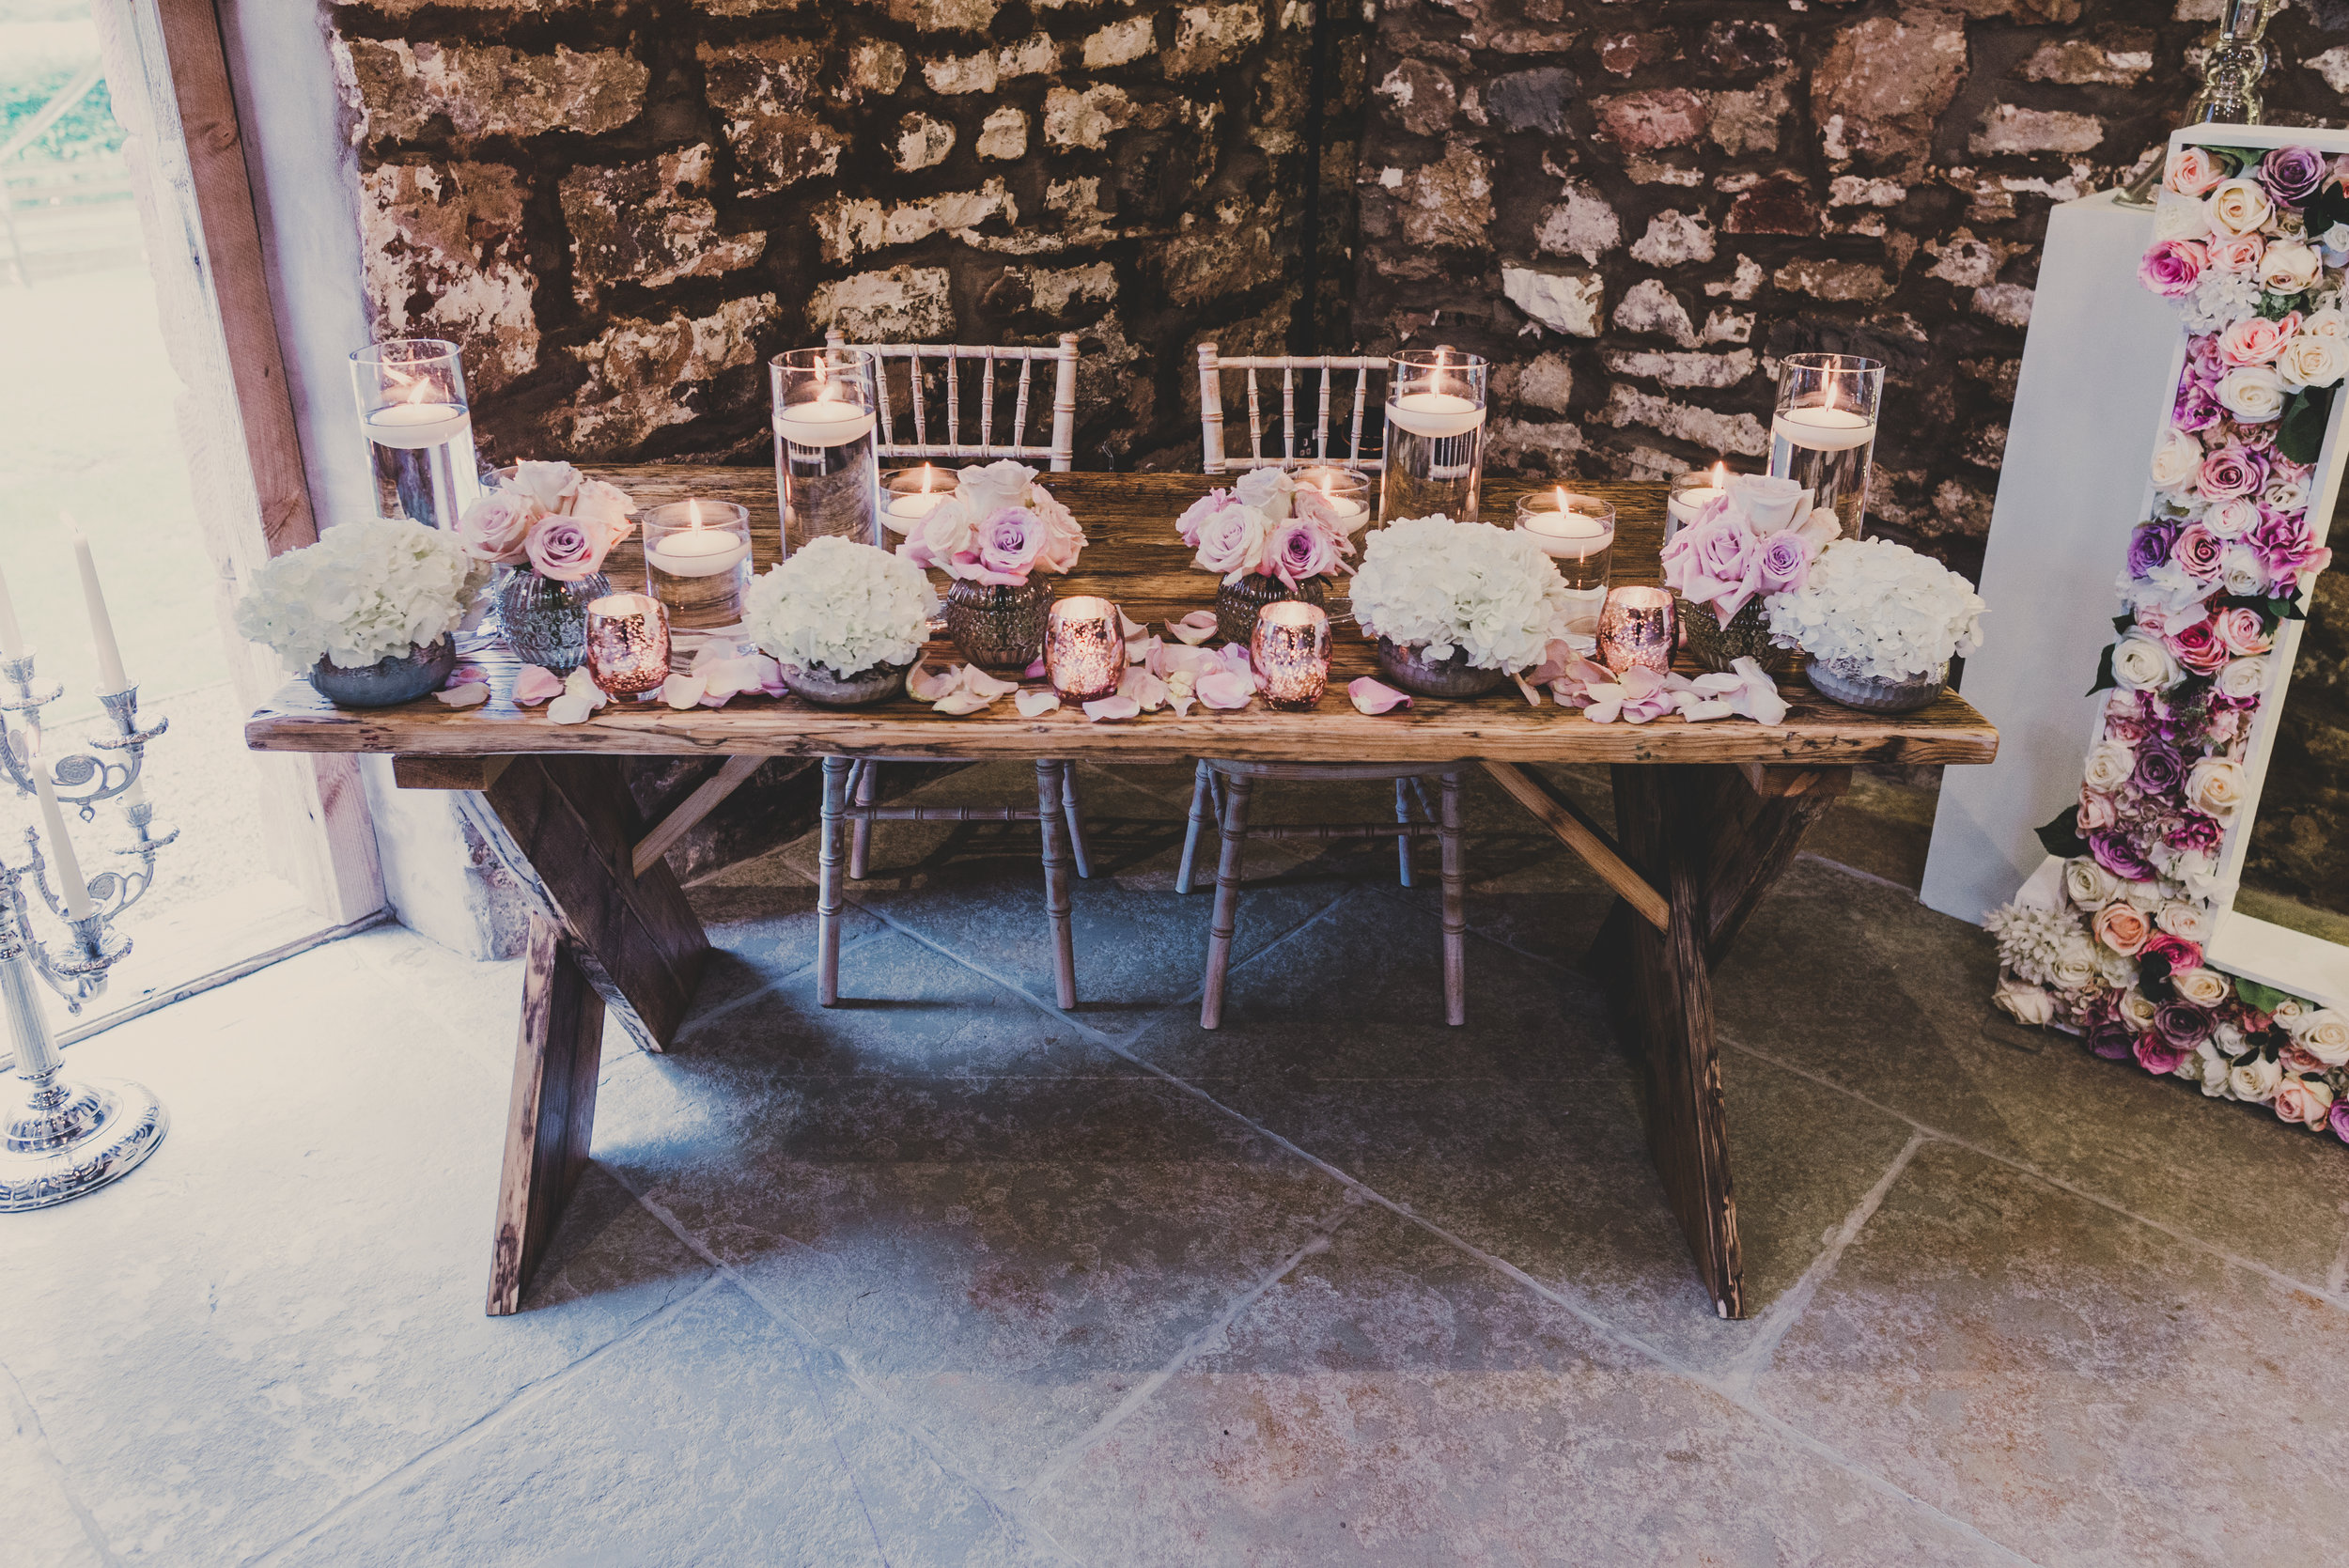 eden-wedding-barn-cumbria-wedding-photography (18).jpg